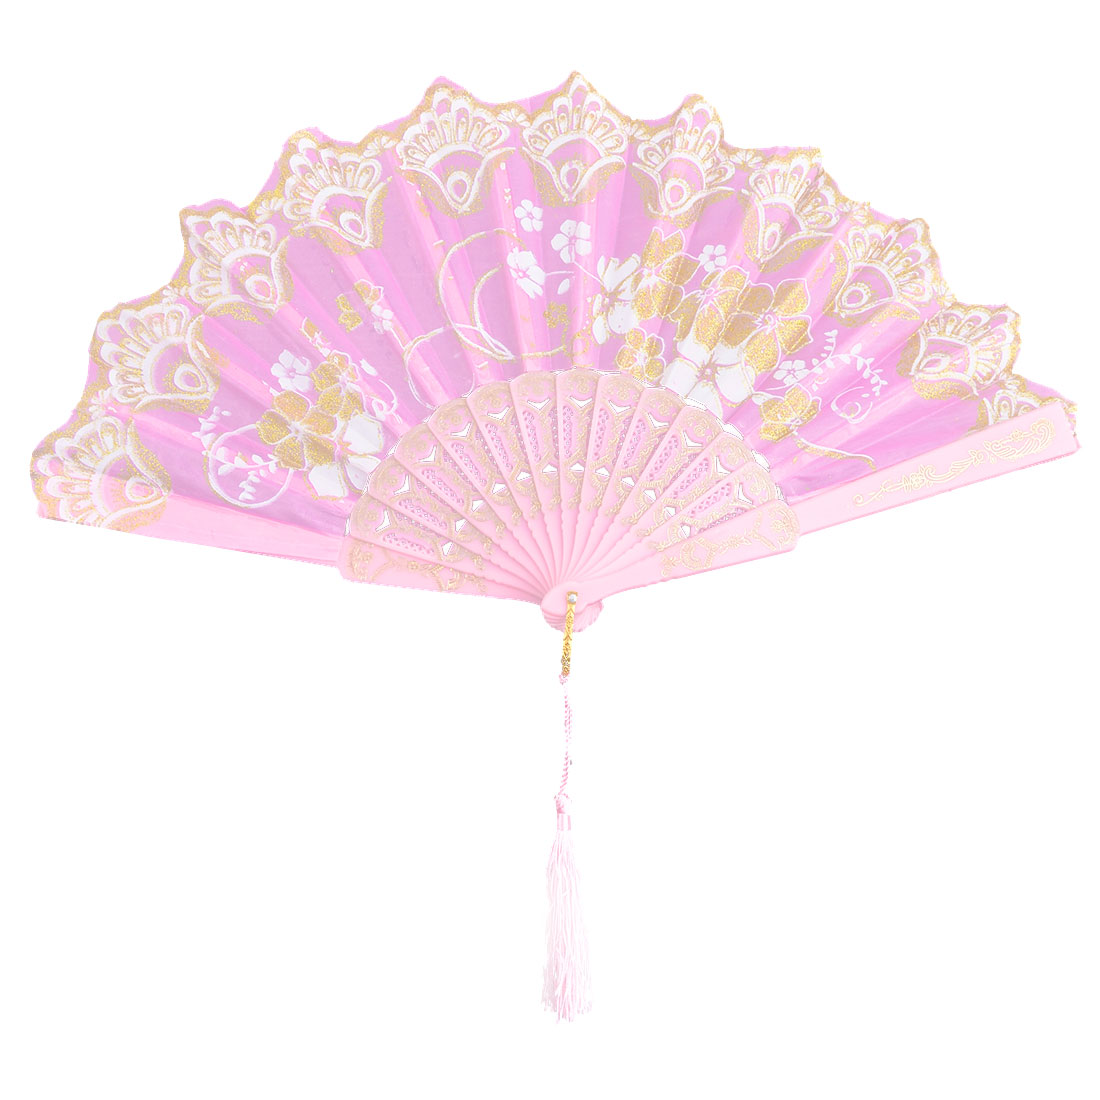 Household Wedding Plastic Cherryblossom Pattern Folding Cooling Dancing Hand Fan Pink